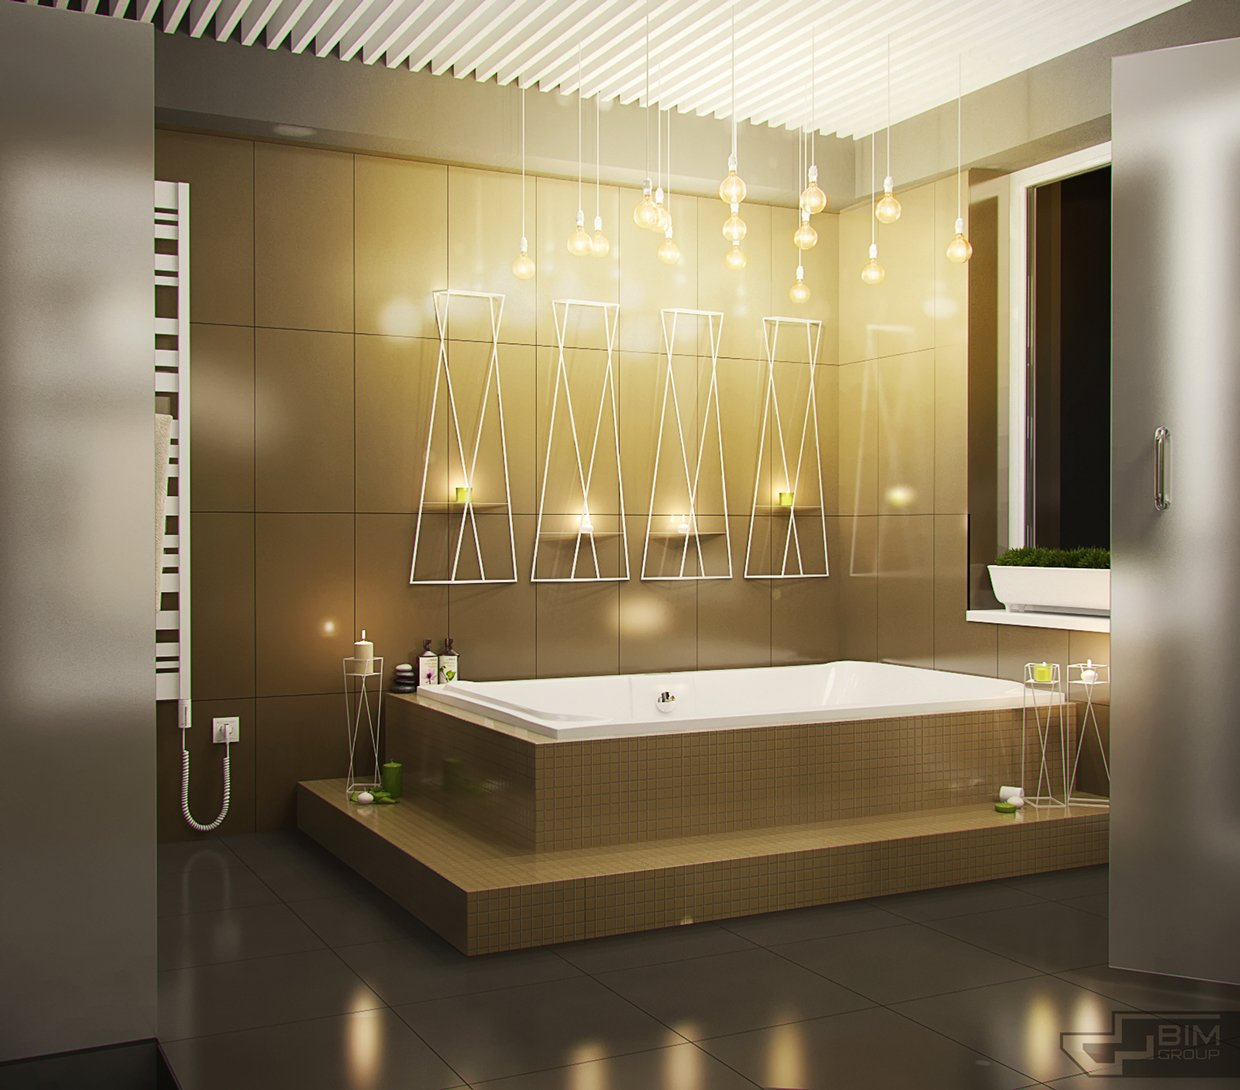 Lighting In Interior Design Creative: Decorating Bathroom Backsplash Ideas Showing A Modern And